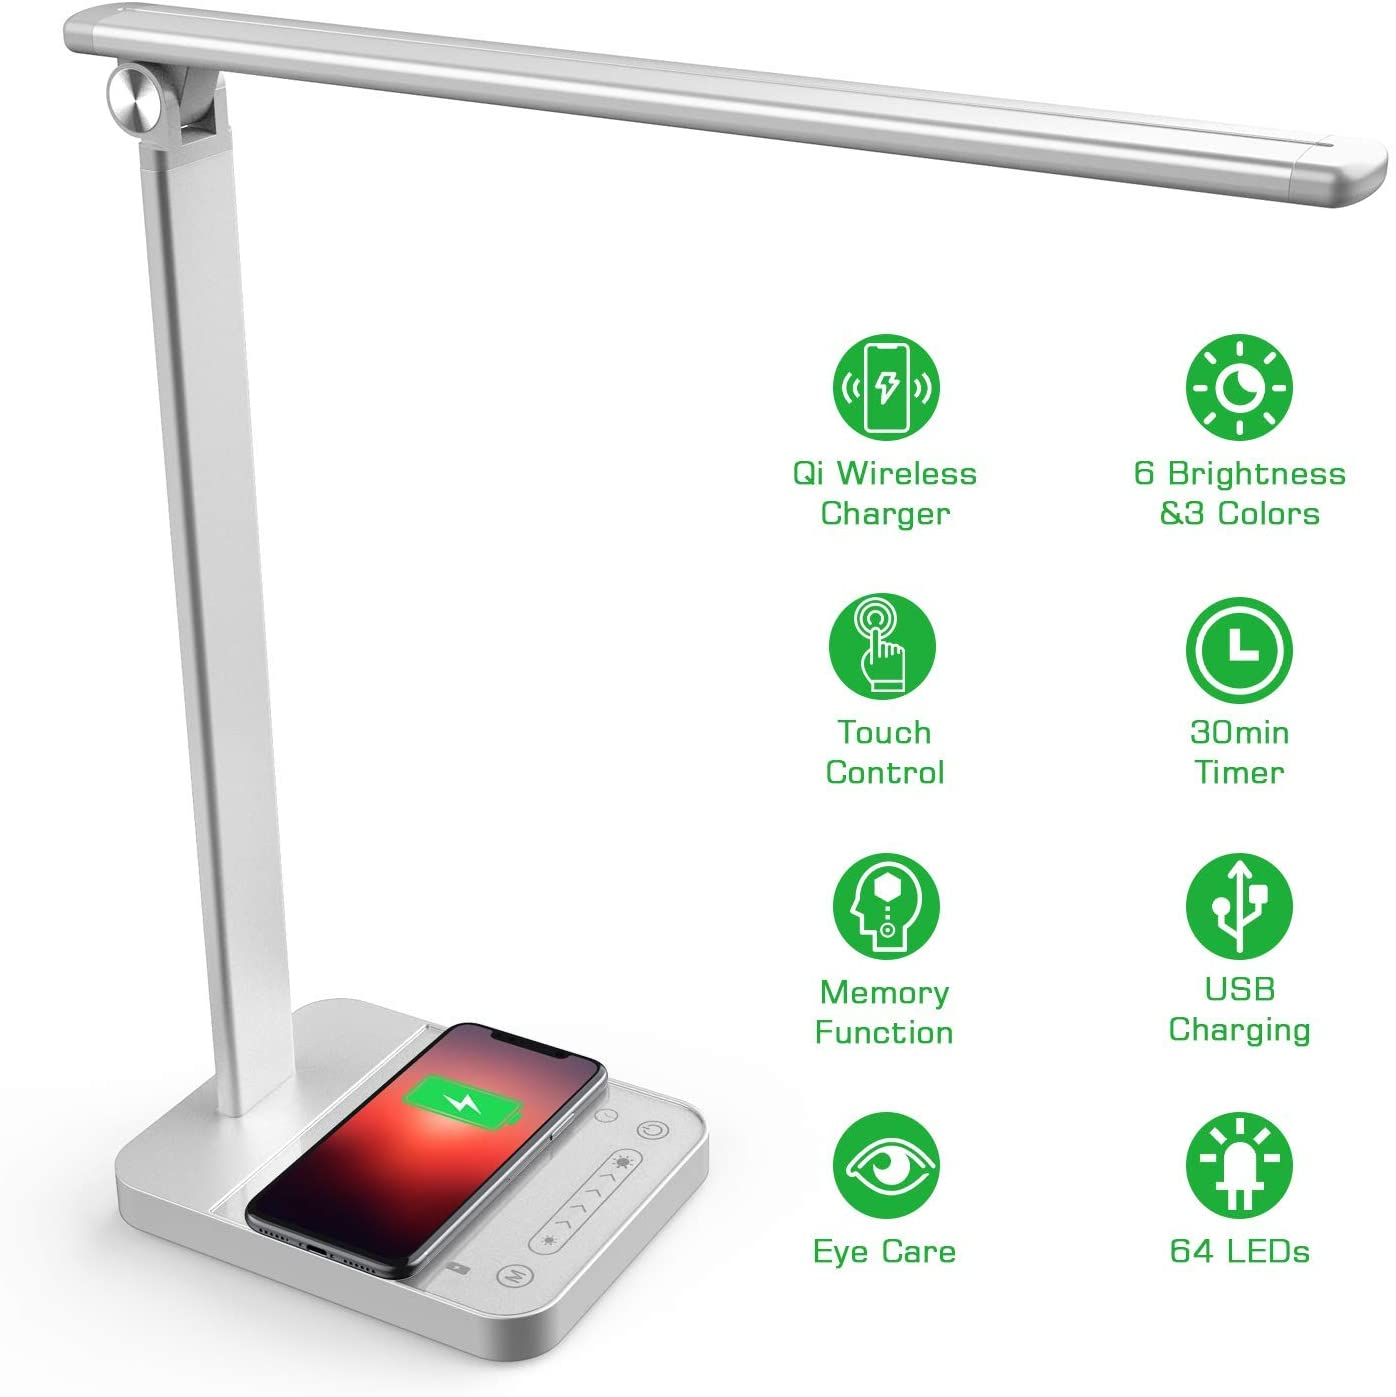 LED Desk Lamp with Wireless Charger, Eye Caring Desk Light Touch Control 6 Brightness & 3 Colors, 30min Timer, Memory Function Table Light for Home Office Work Reading Study, Silver